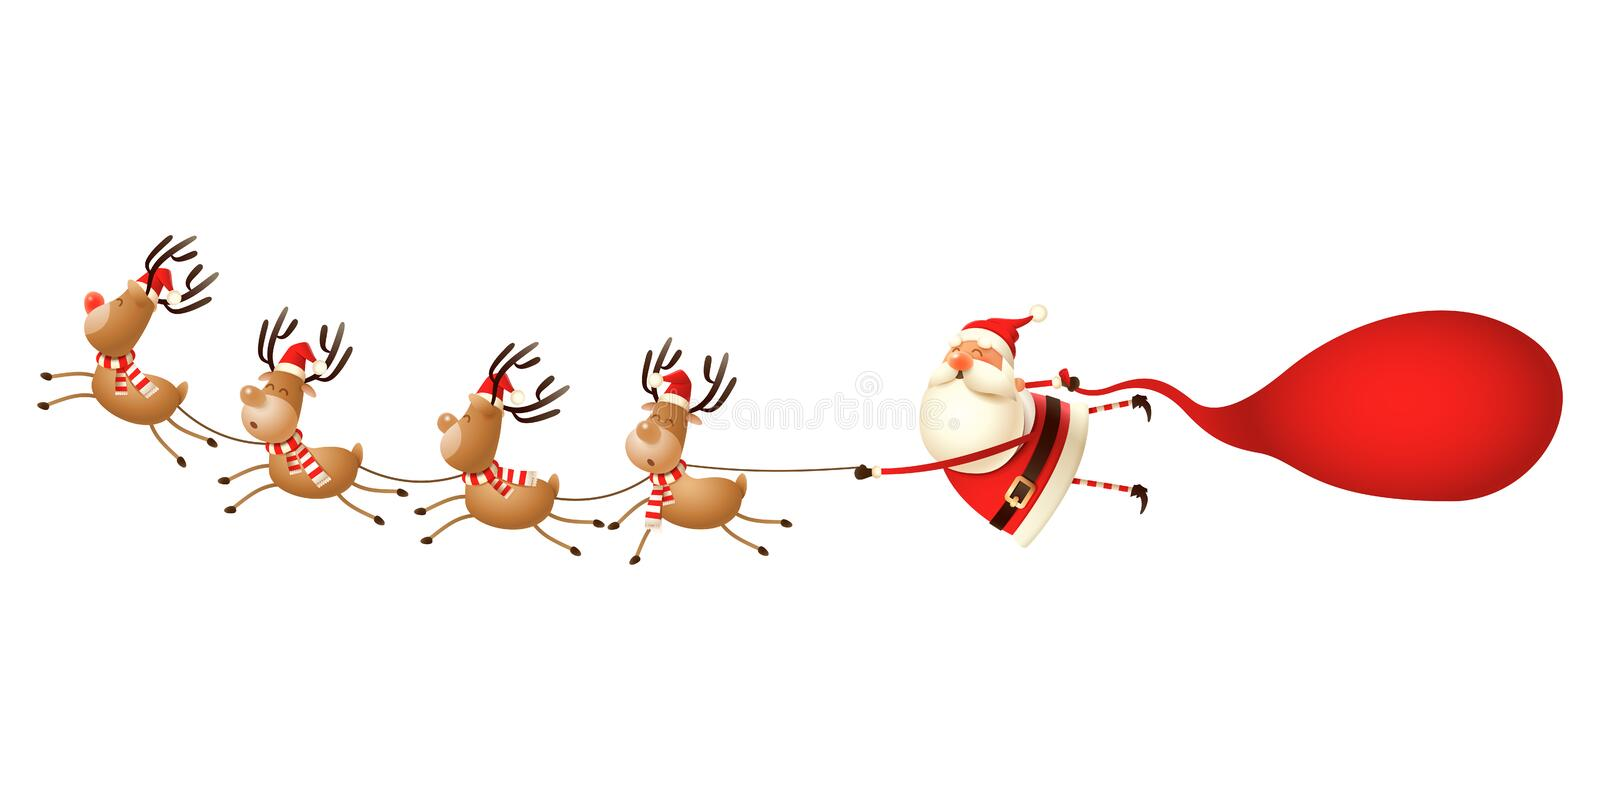 Reindeer pulling Santa Claus - cute funny Christmas illustration isolated on white royalty free illustration